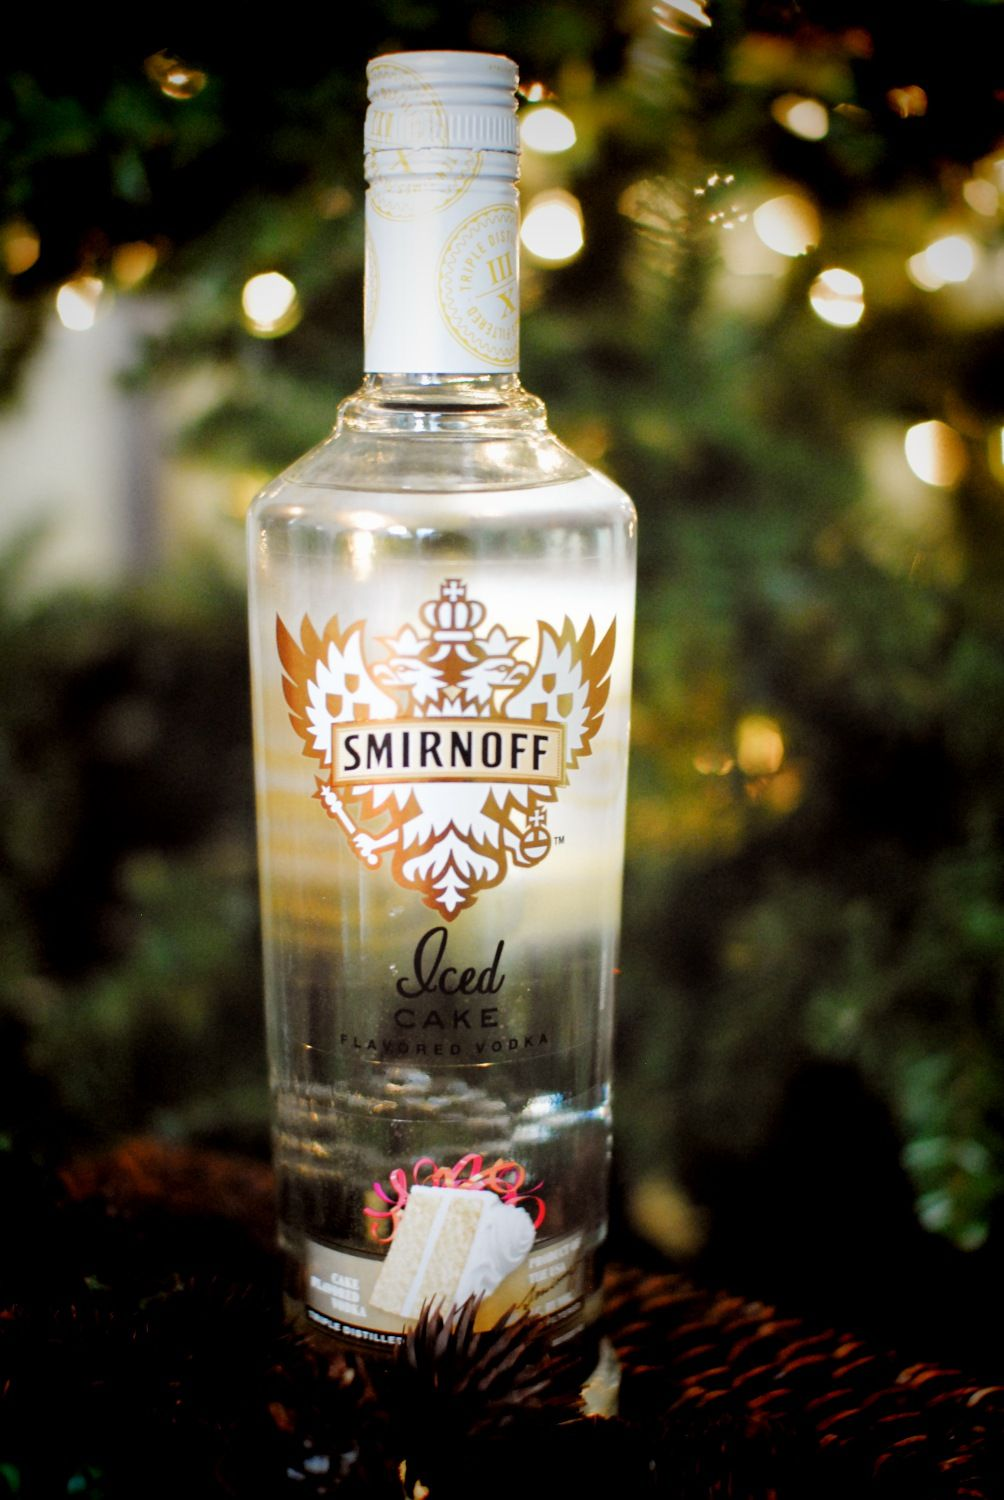 smirnoff iced cake flavored vodka a simple mix of the ginger ale